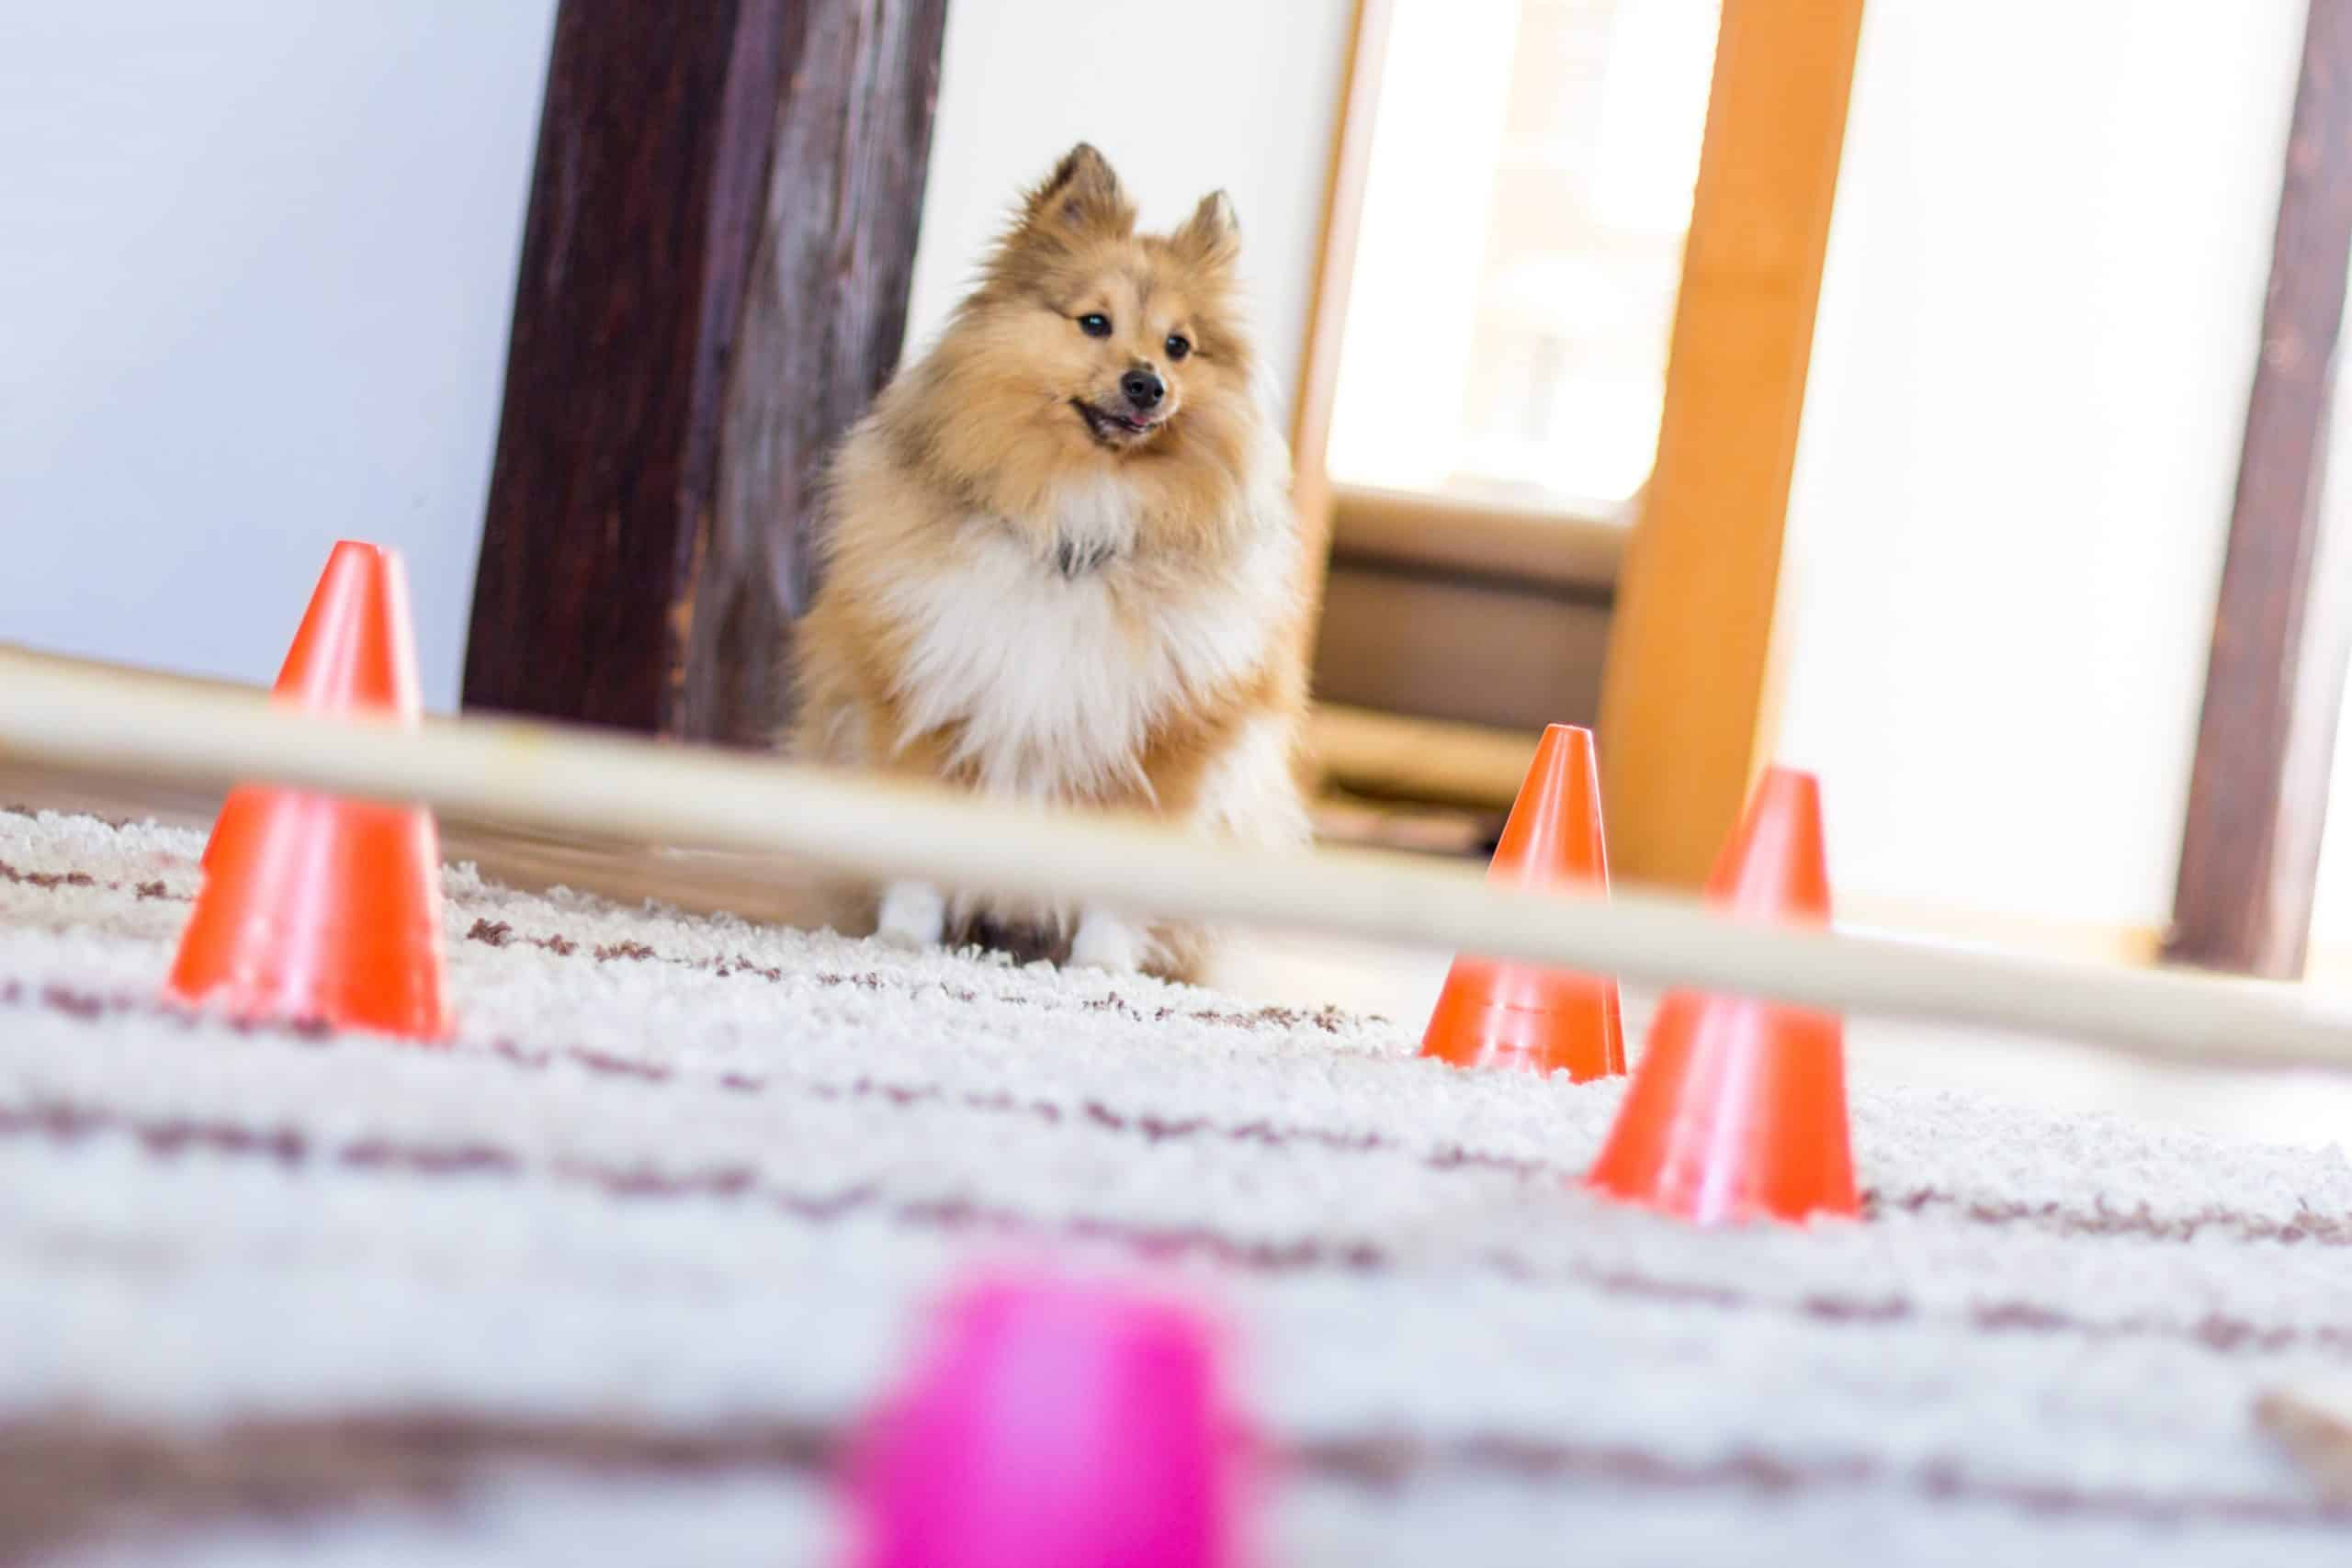 Sheltie navigates an agility training course at home.